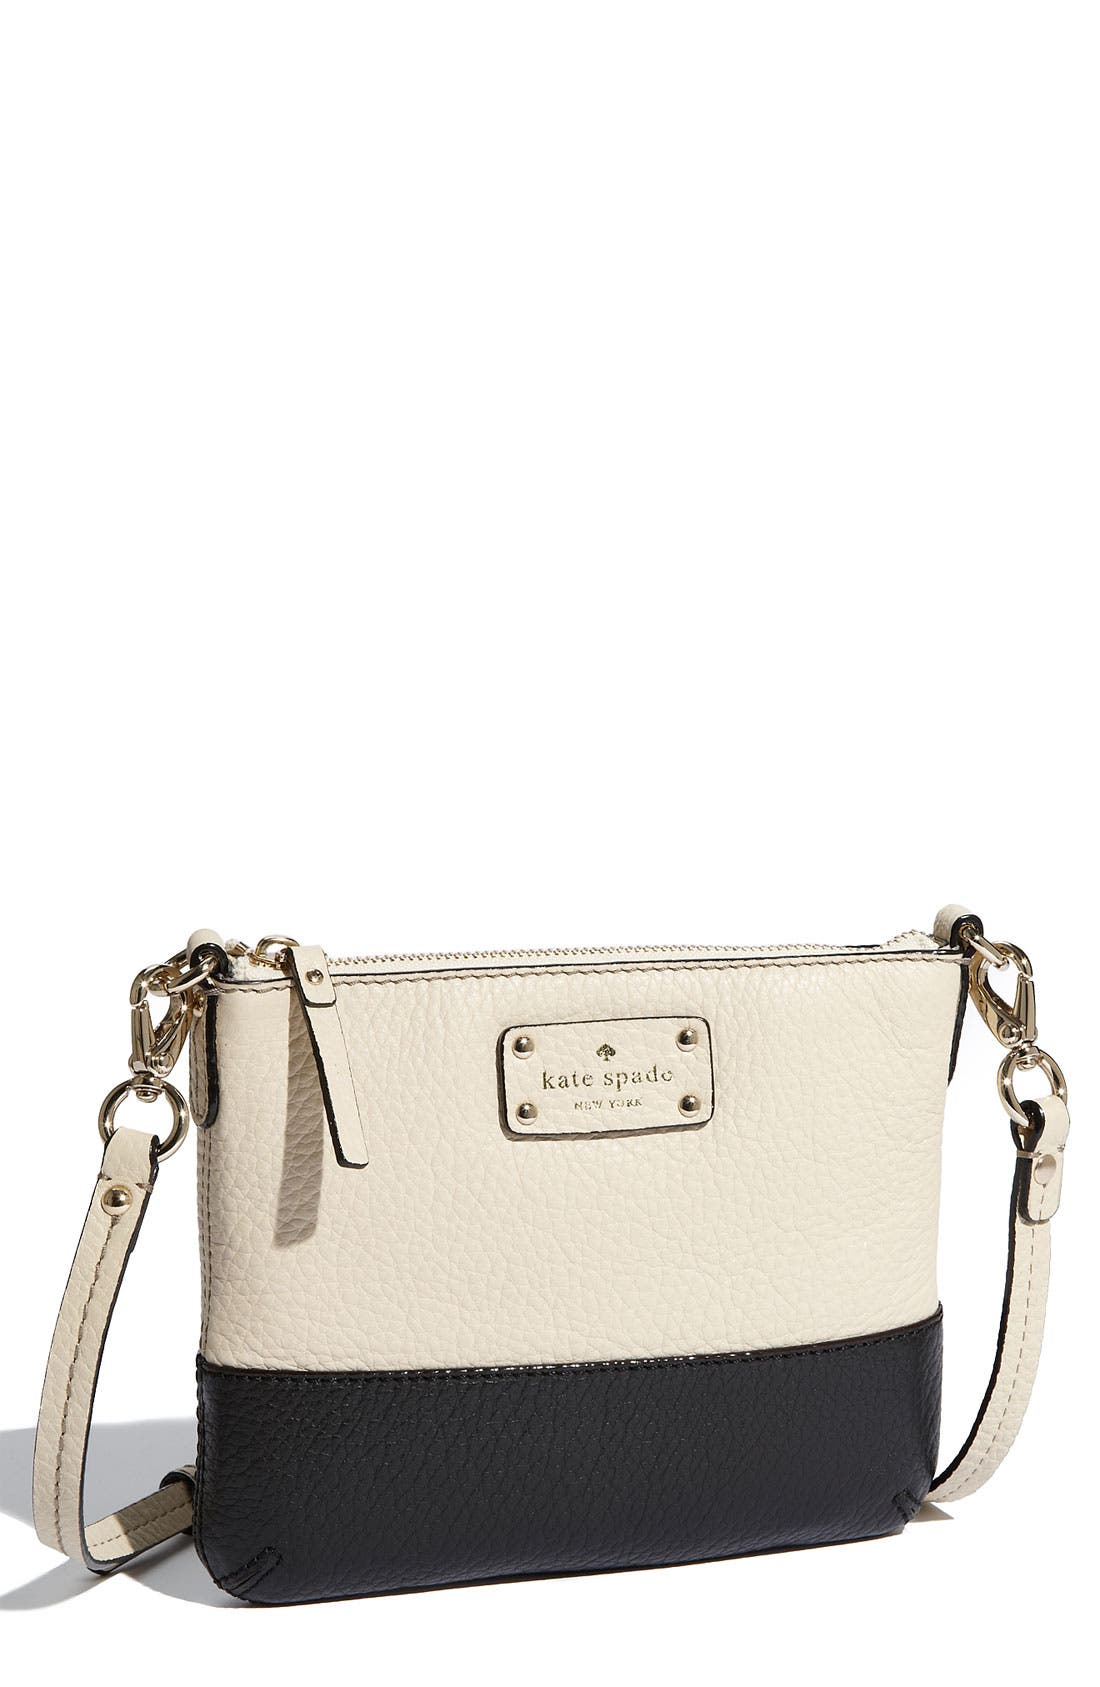 Alternate Image 1 Selected - kate spade new york 'grove park - tenley' crossbody bag